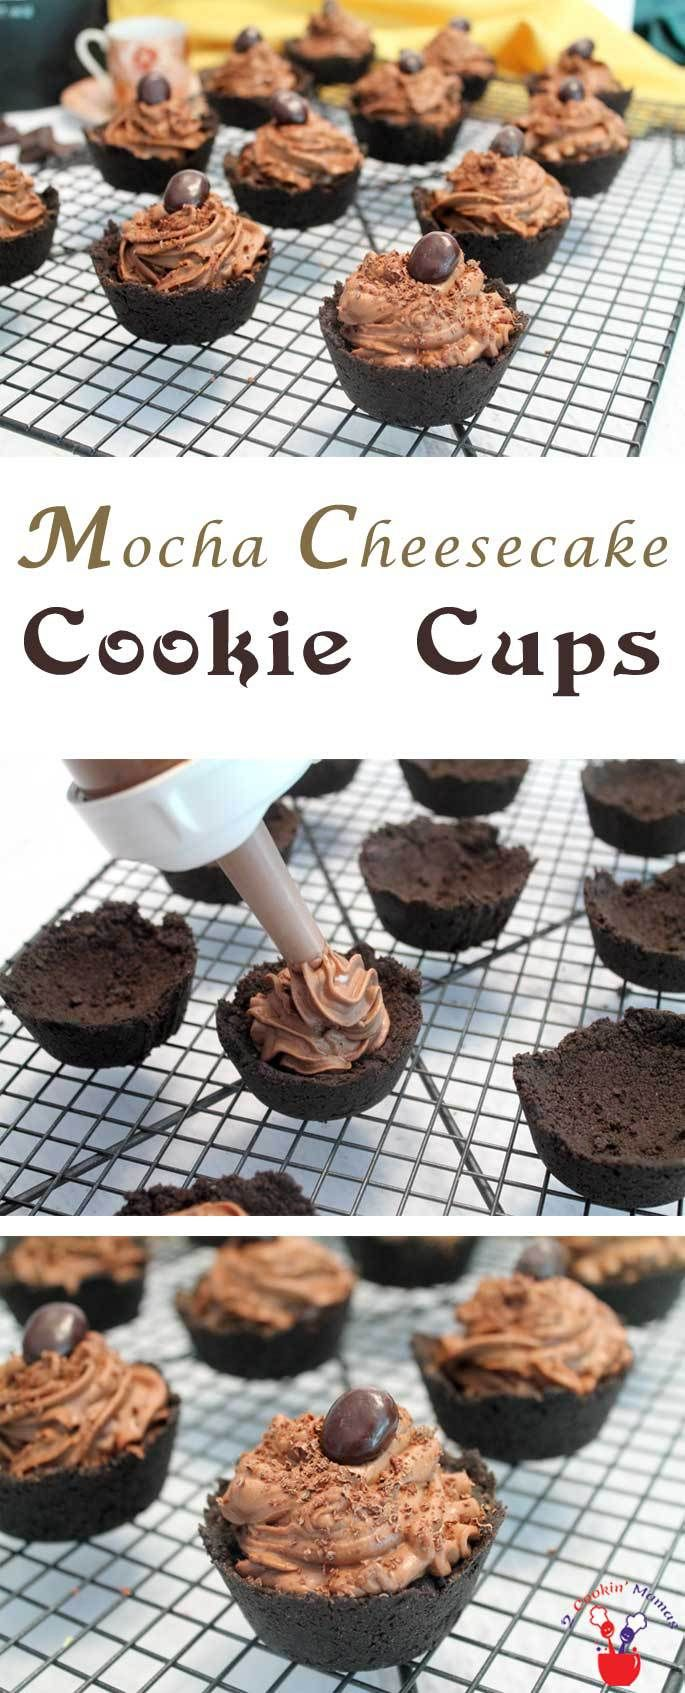 Mocha Cheesecake Cookie Cups | 2 Cookin Mamas Deliciously decadent mocha cheesecake is a rich cream cheese mixture flavored with coffee and chocolate. It's the perfect filling to pile inside these dark chocolate cookie cups or just to eat by itself. Sure to be a hit for your next party!